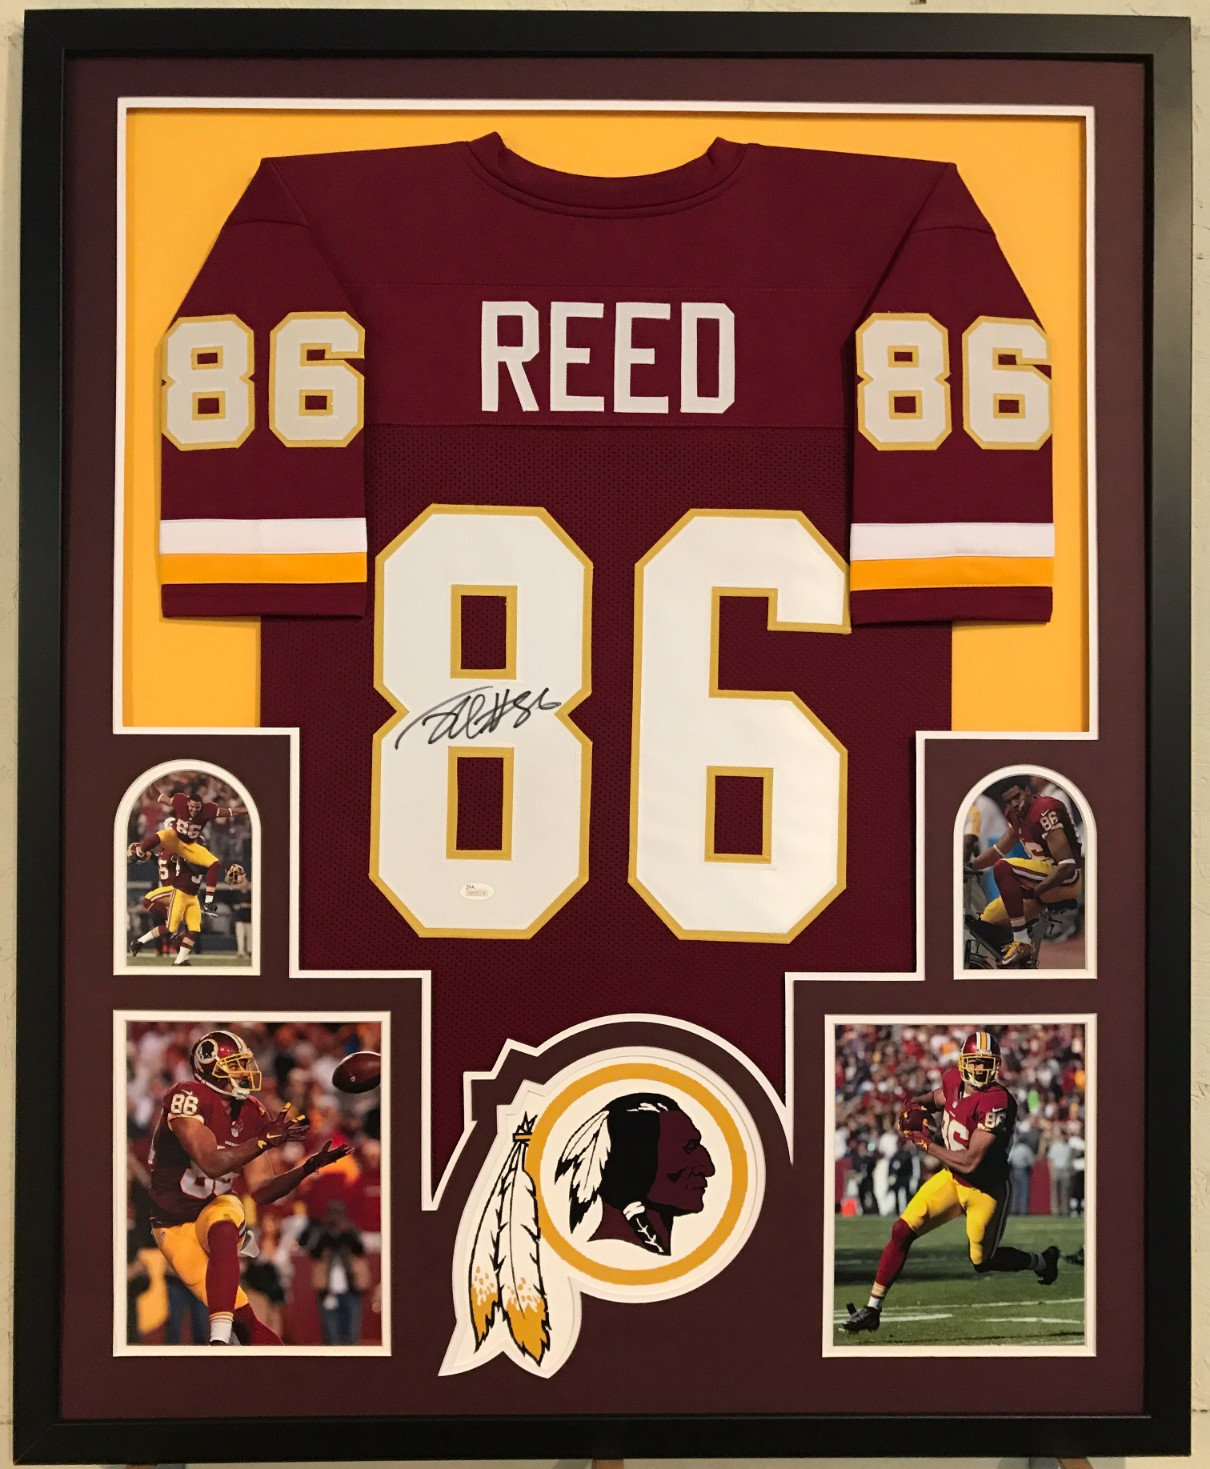 d3dd148d3 Jordan Reed Signed Washington Redskins Custom Jersey Framed Display (JSA  Witness COA). Hover to zoom